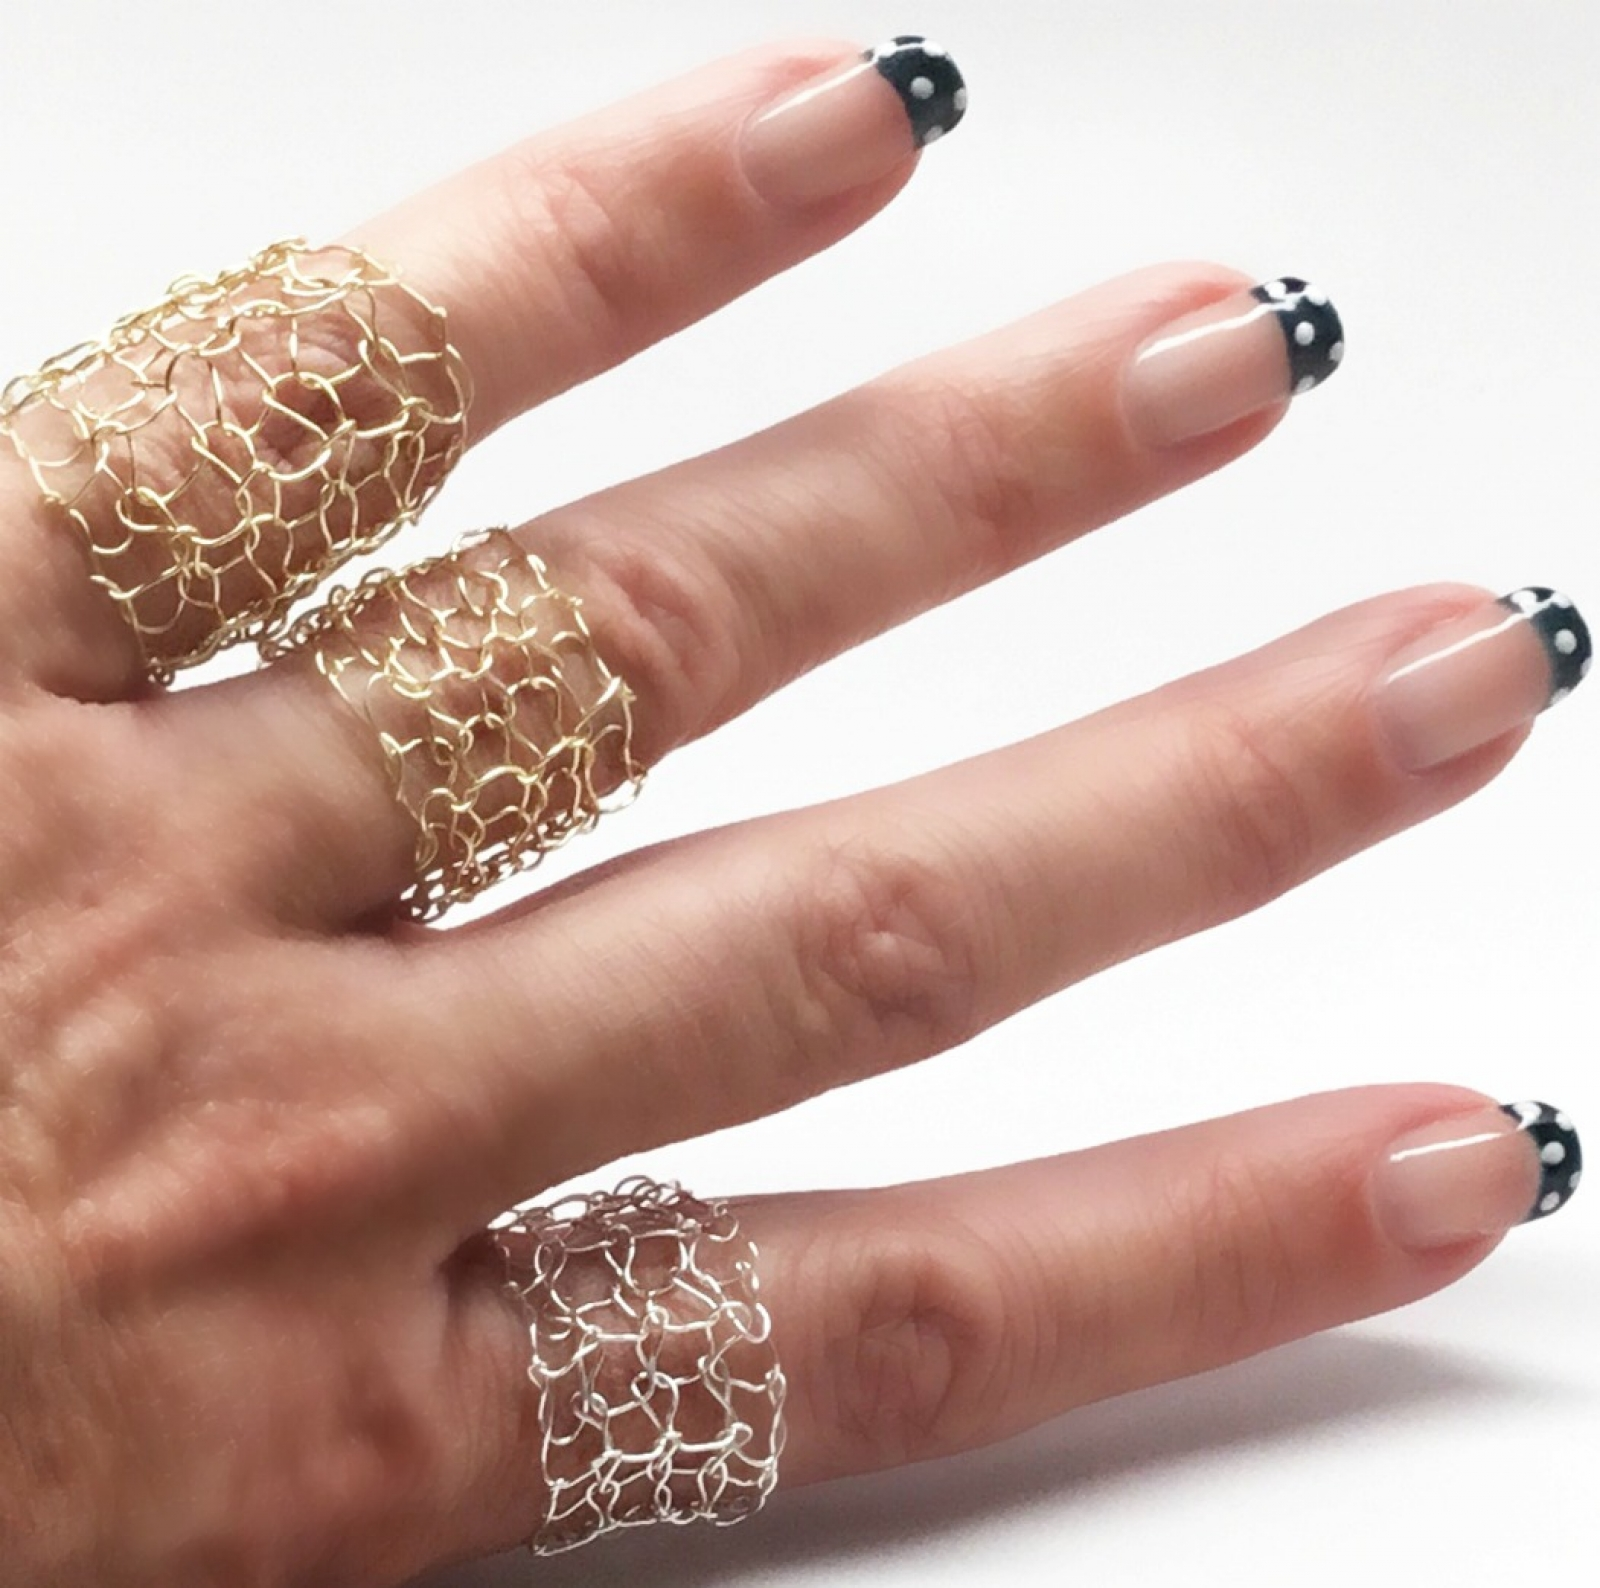 Wire Bands: Silver Mesh Ring Wire Knit Intricate Wire Lace Band Ring